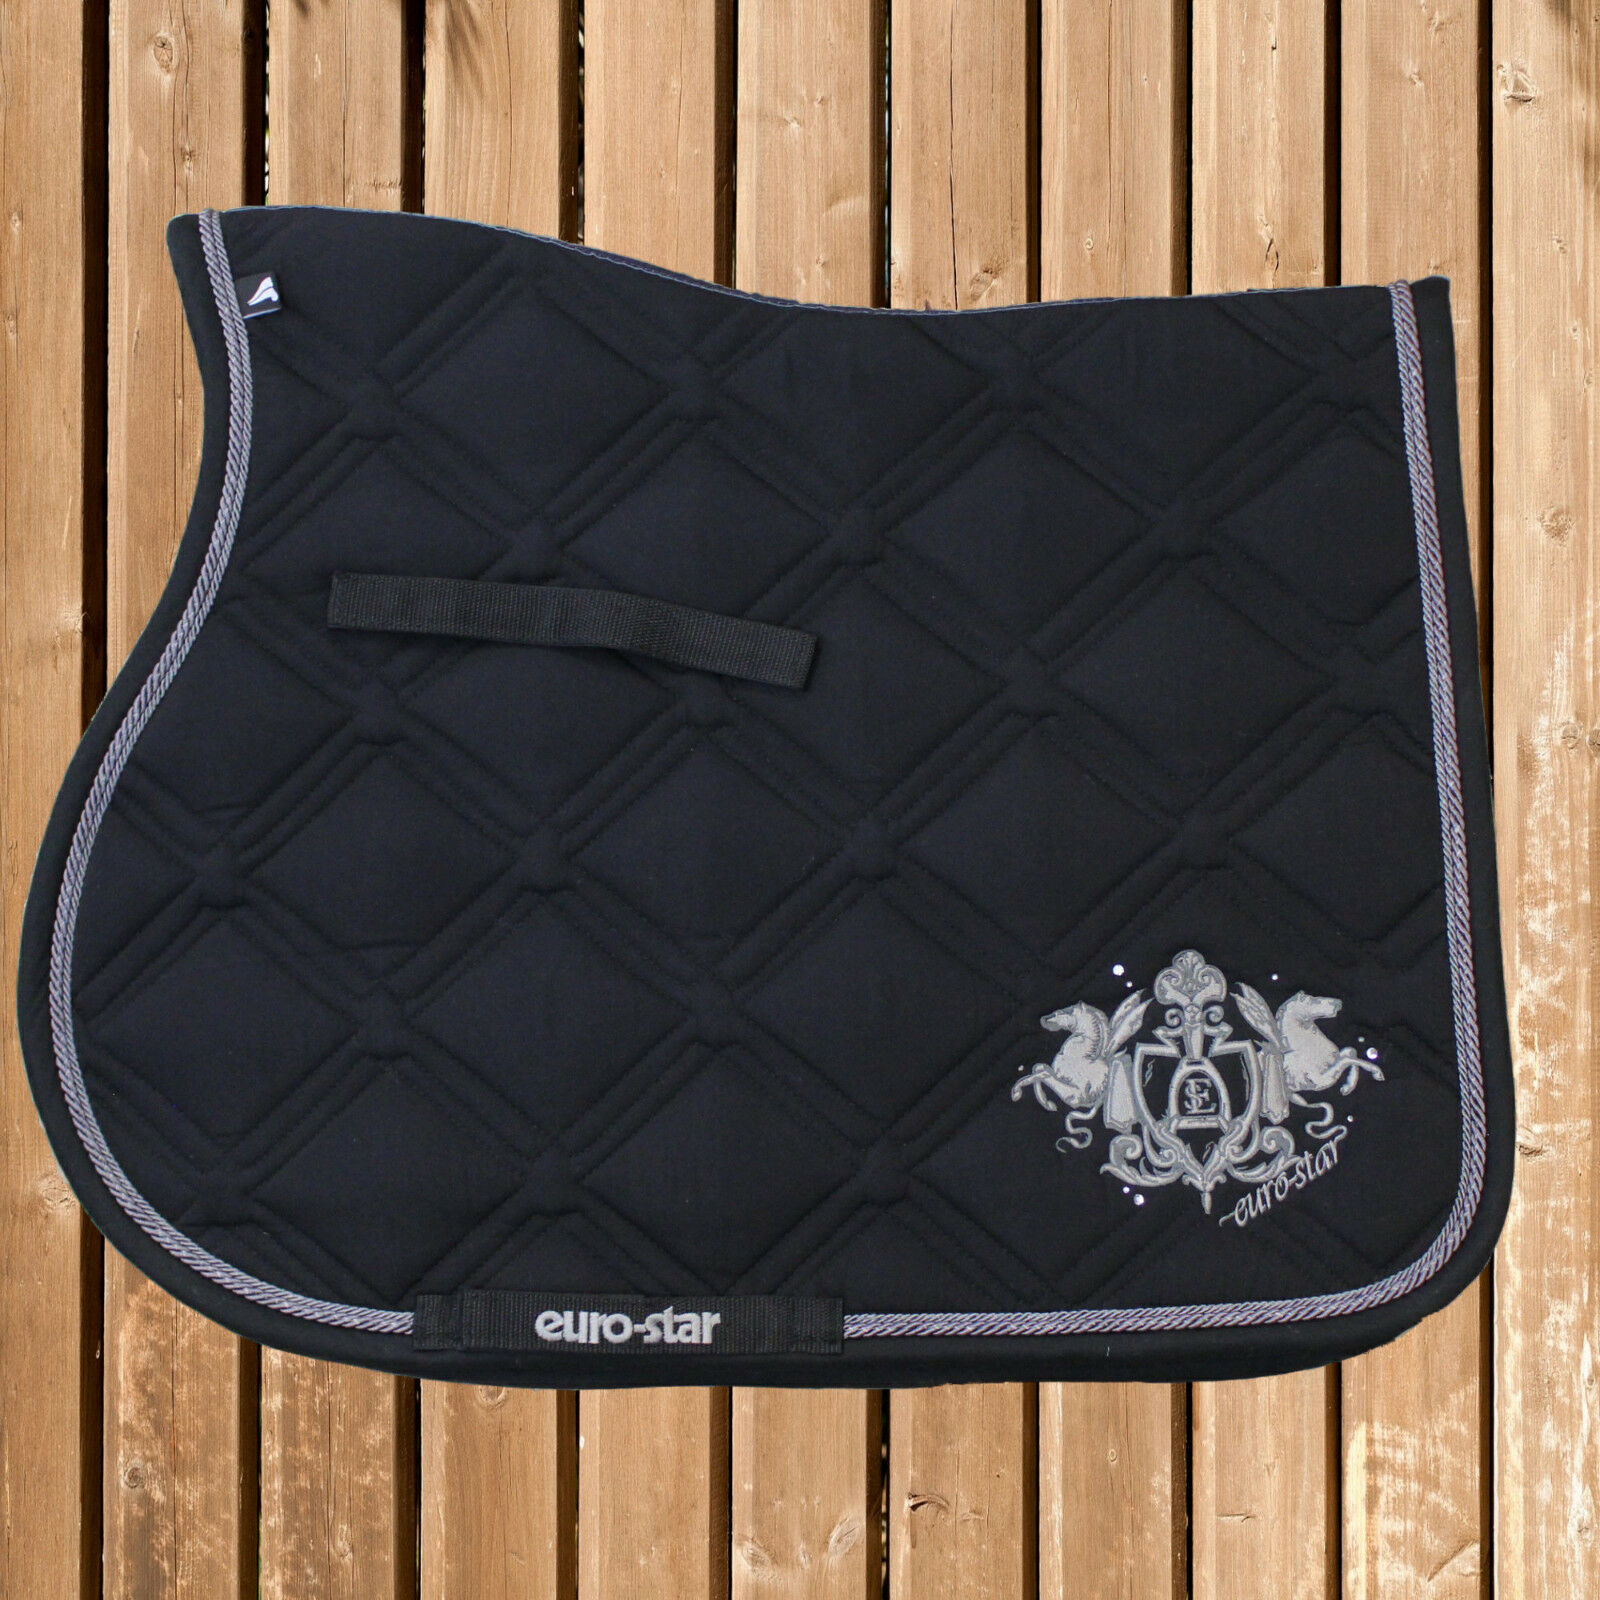 Euro Star Schabracke Excellent 141, schwarz ,Satteldecke, VS, Saddle Pad